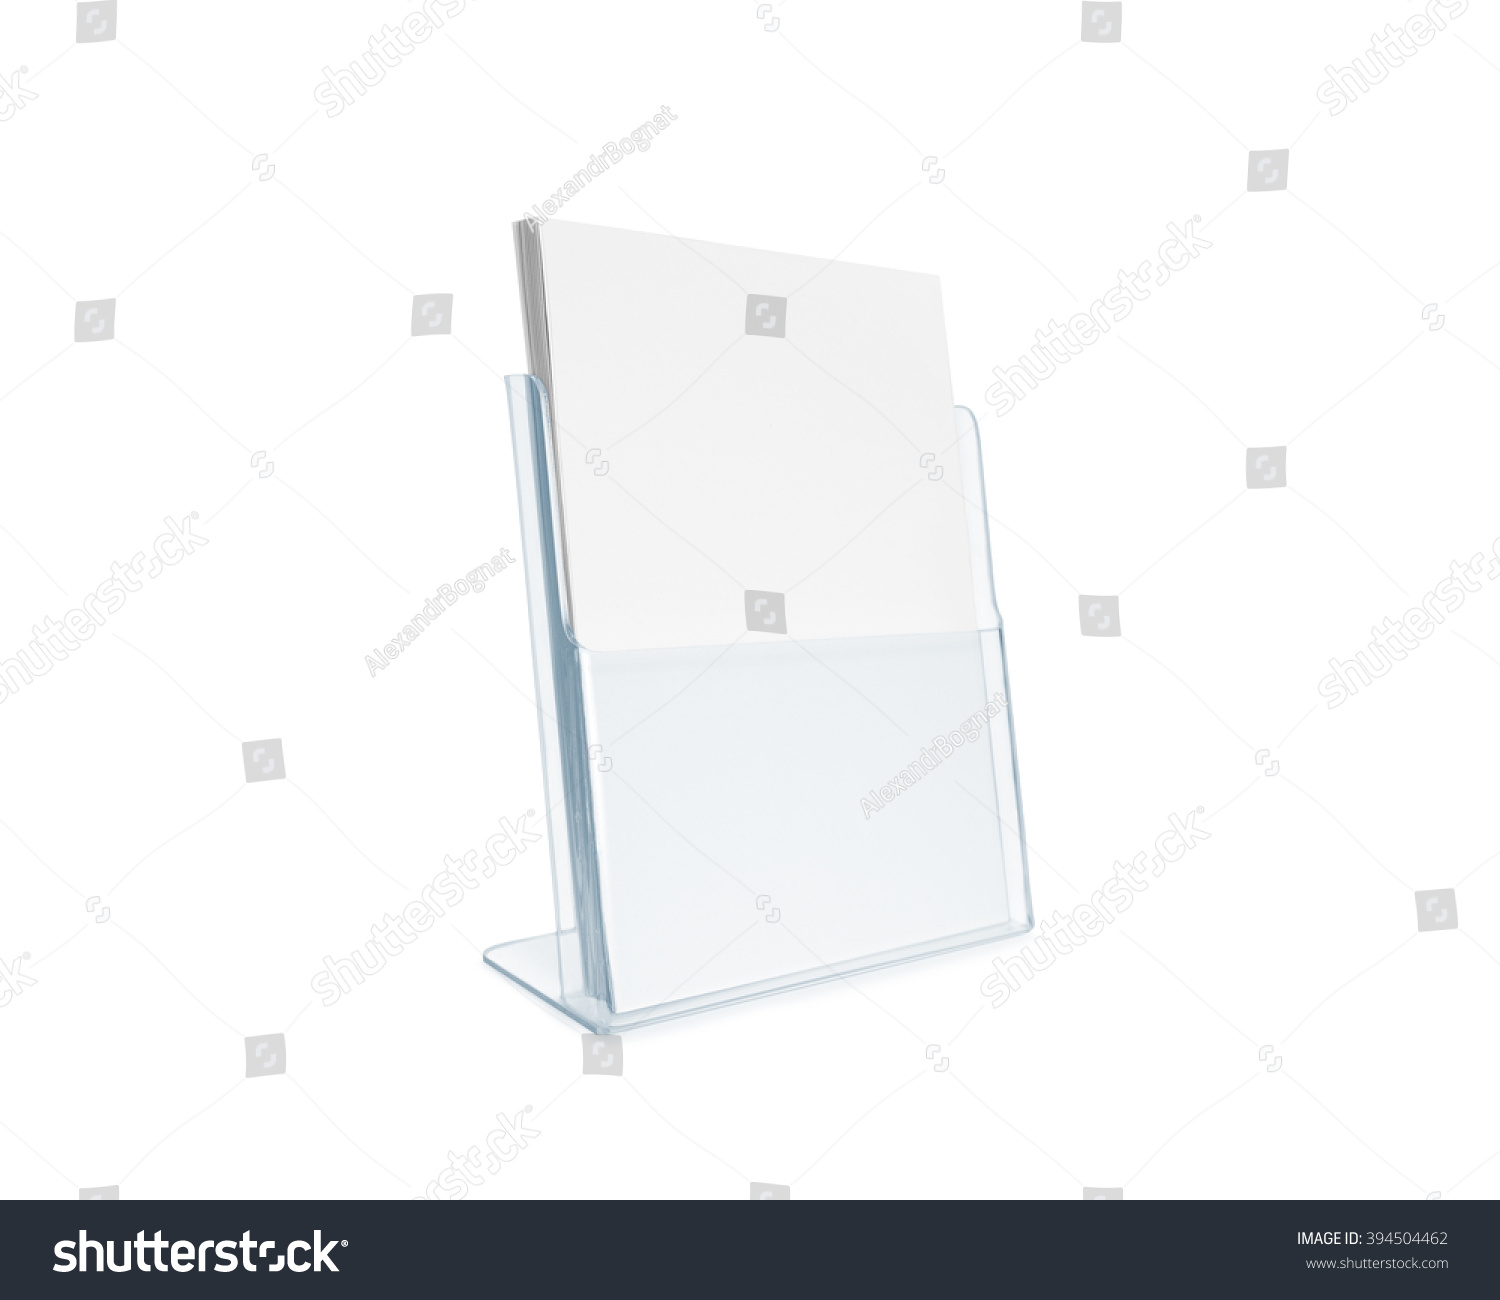 Blank flyer mockup glass plastic transparent stock photo for Cardboard brochure holder template